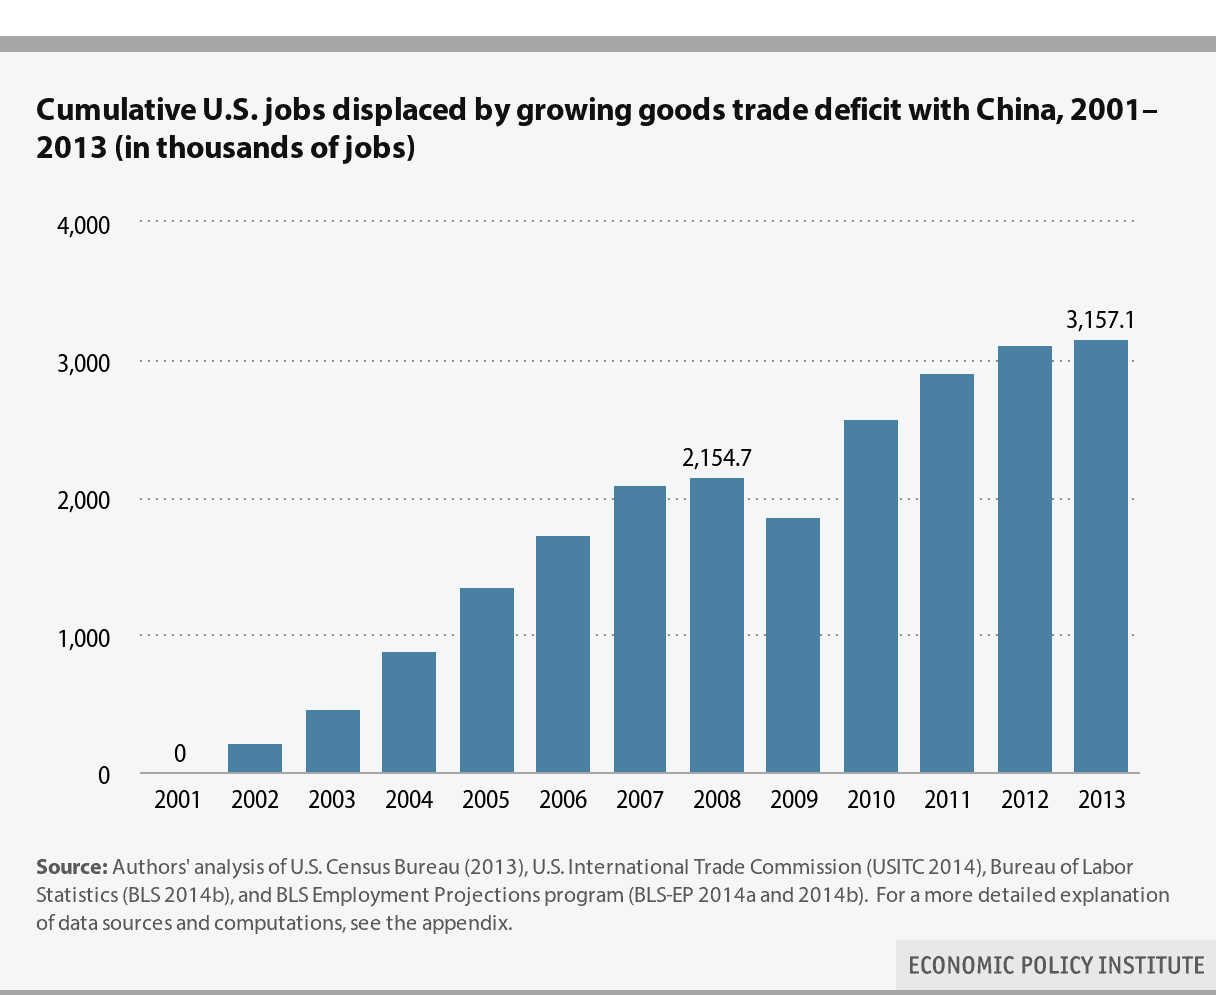 U.S. jobs lost because of trade deficit with China, 2001-2013, in thousands of jobs (EPI).